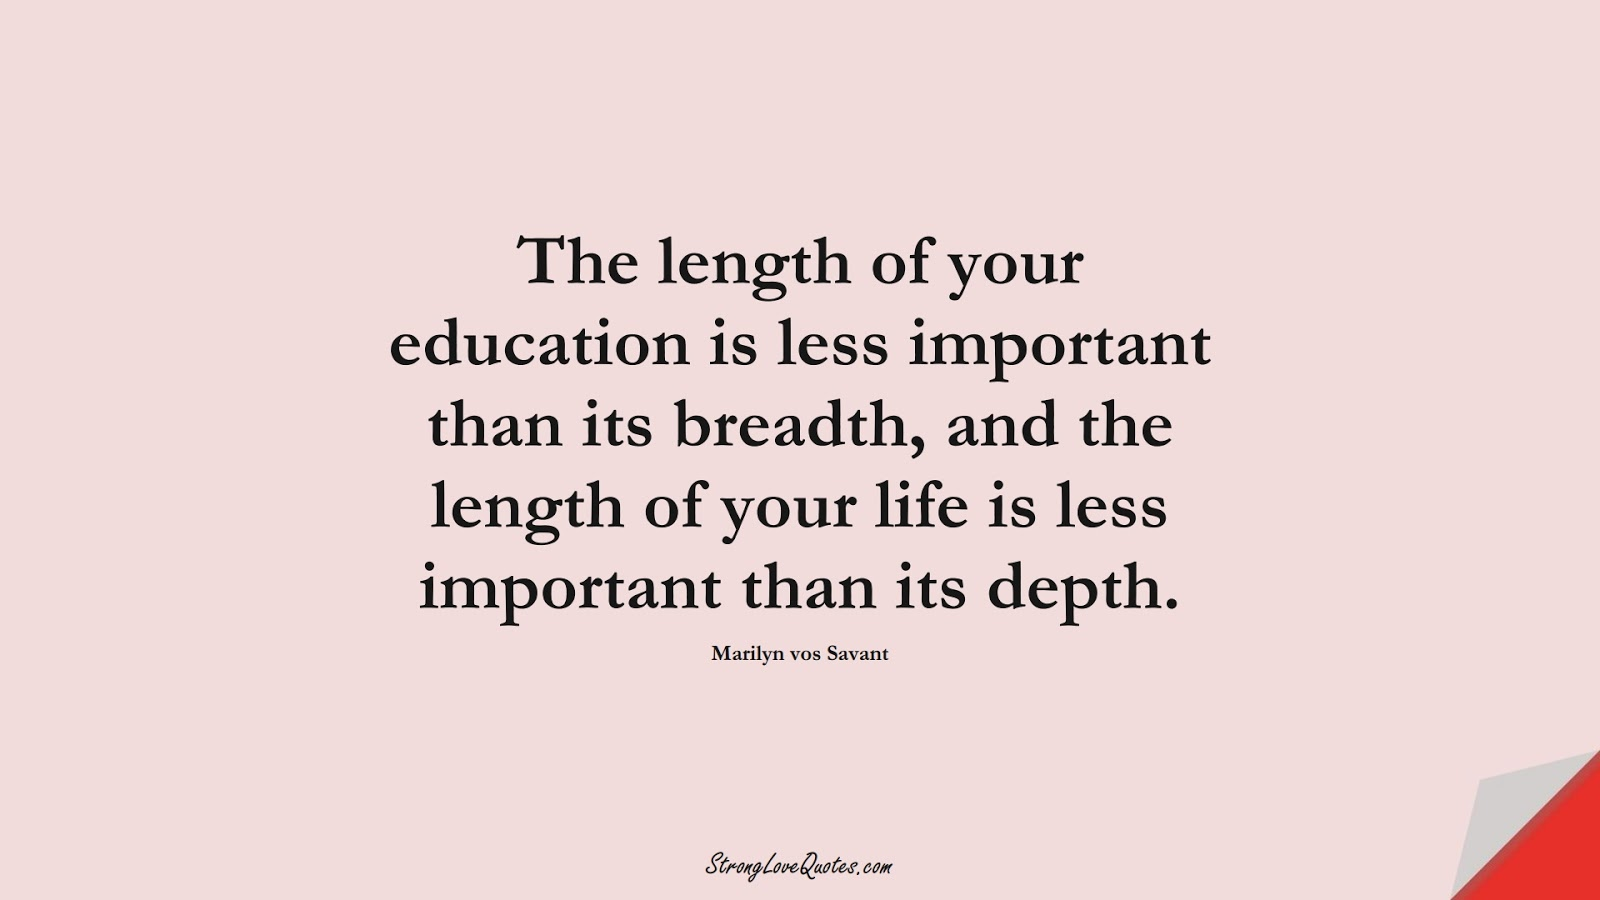 The length of your education is less important than its breadth, and the length of your life is less important than its depth. (Marilyn vos Savant);  #EducationQuotes